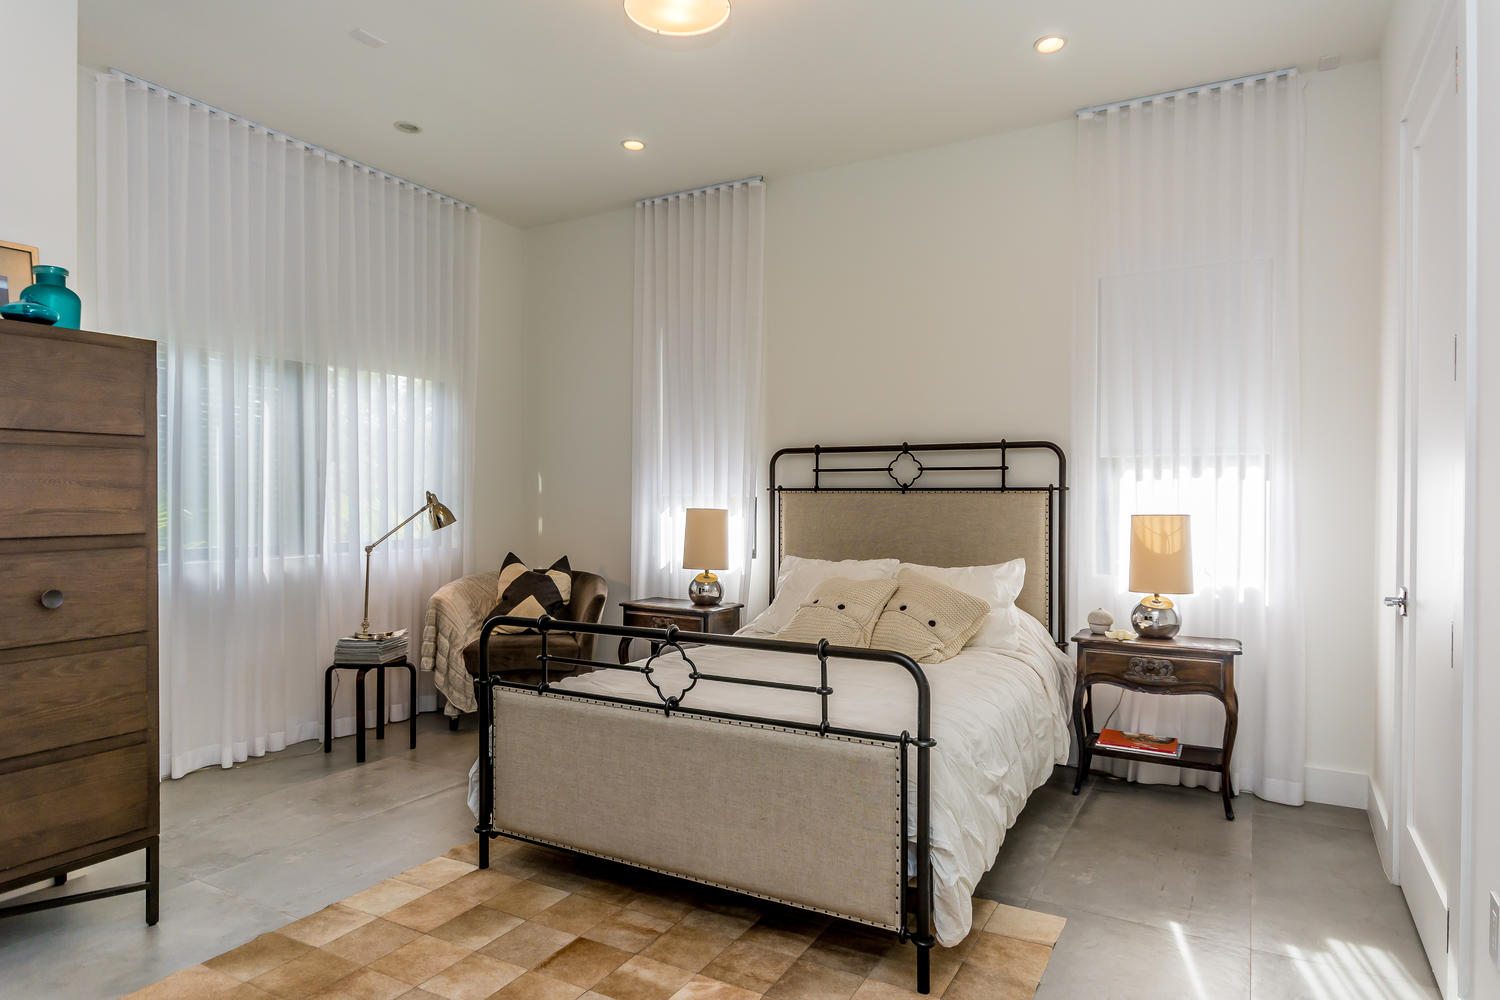 Bayshore Dr, Coral Gables - Interior Design and Decoration